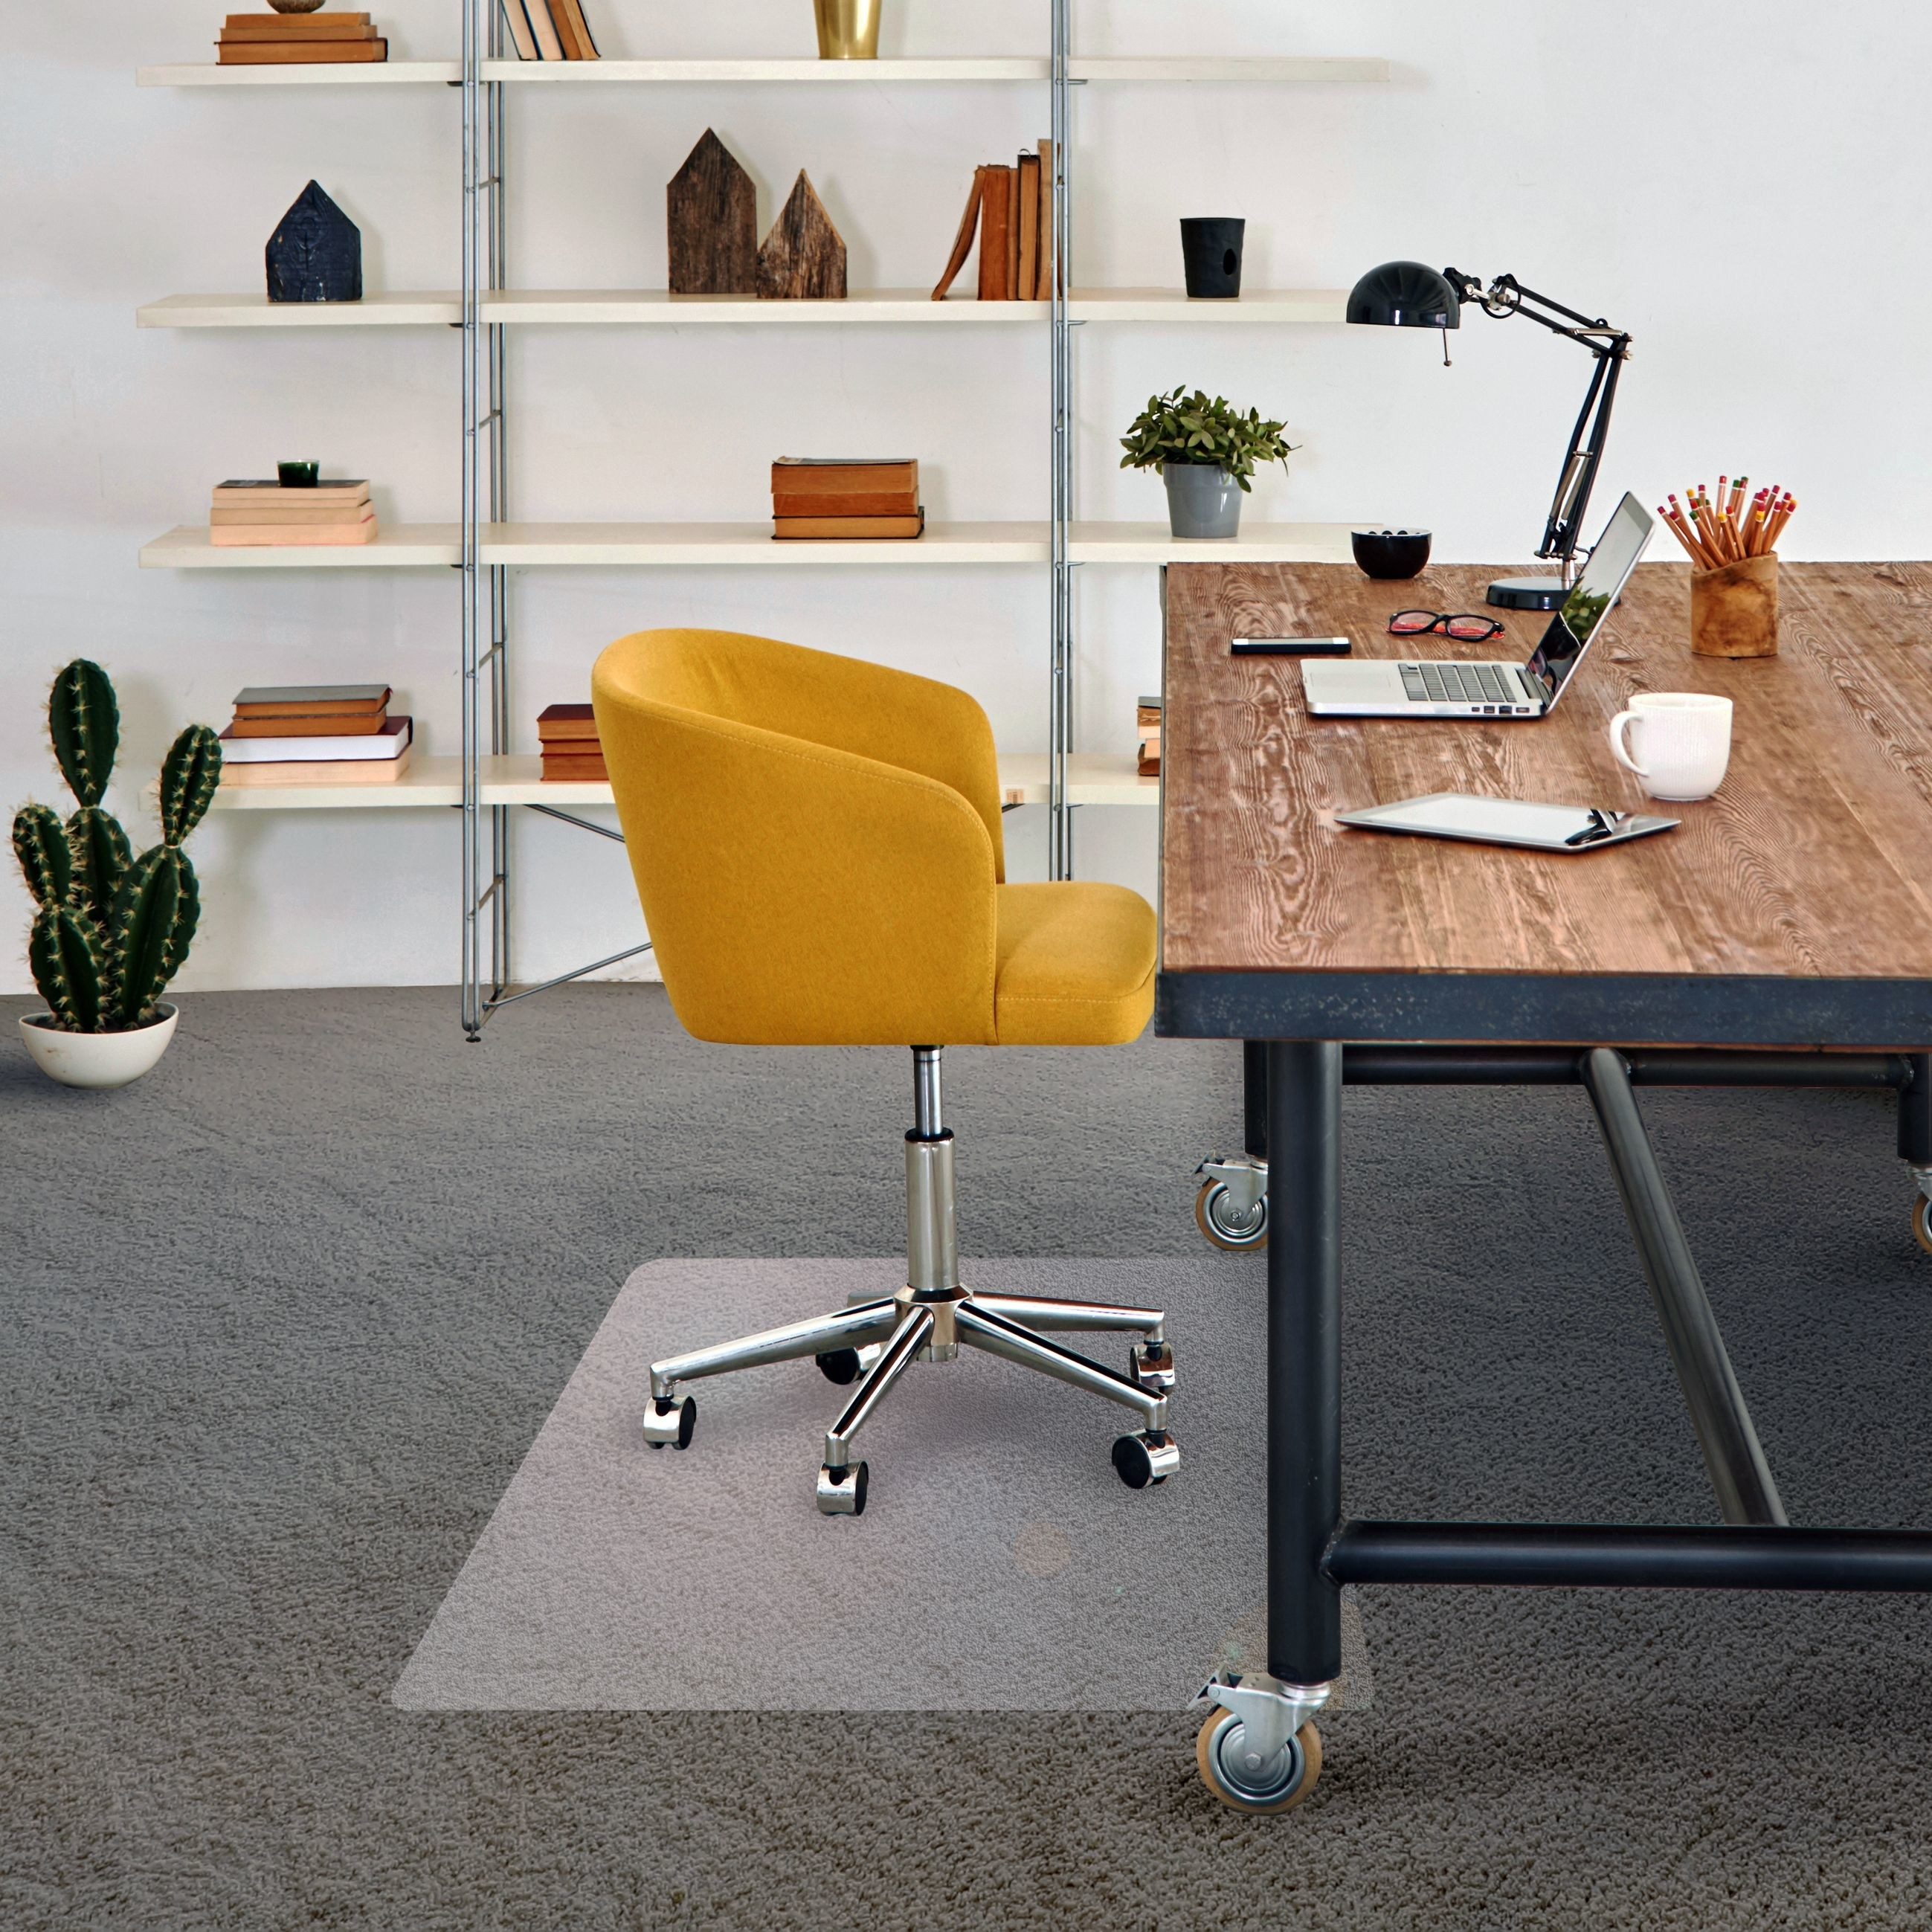 Clear plastic mat with a wheeled chair atop it